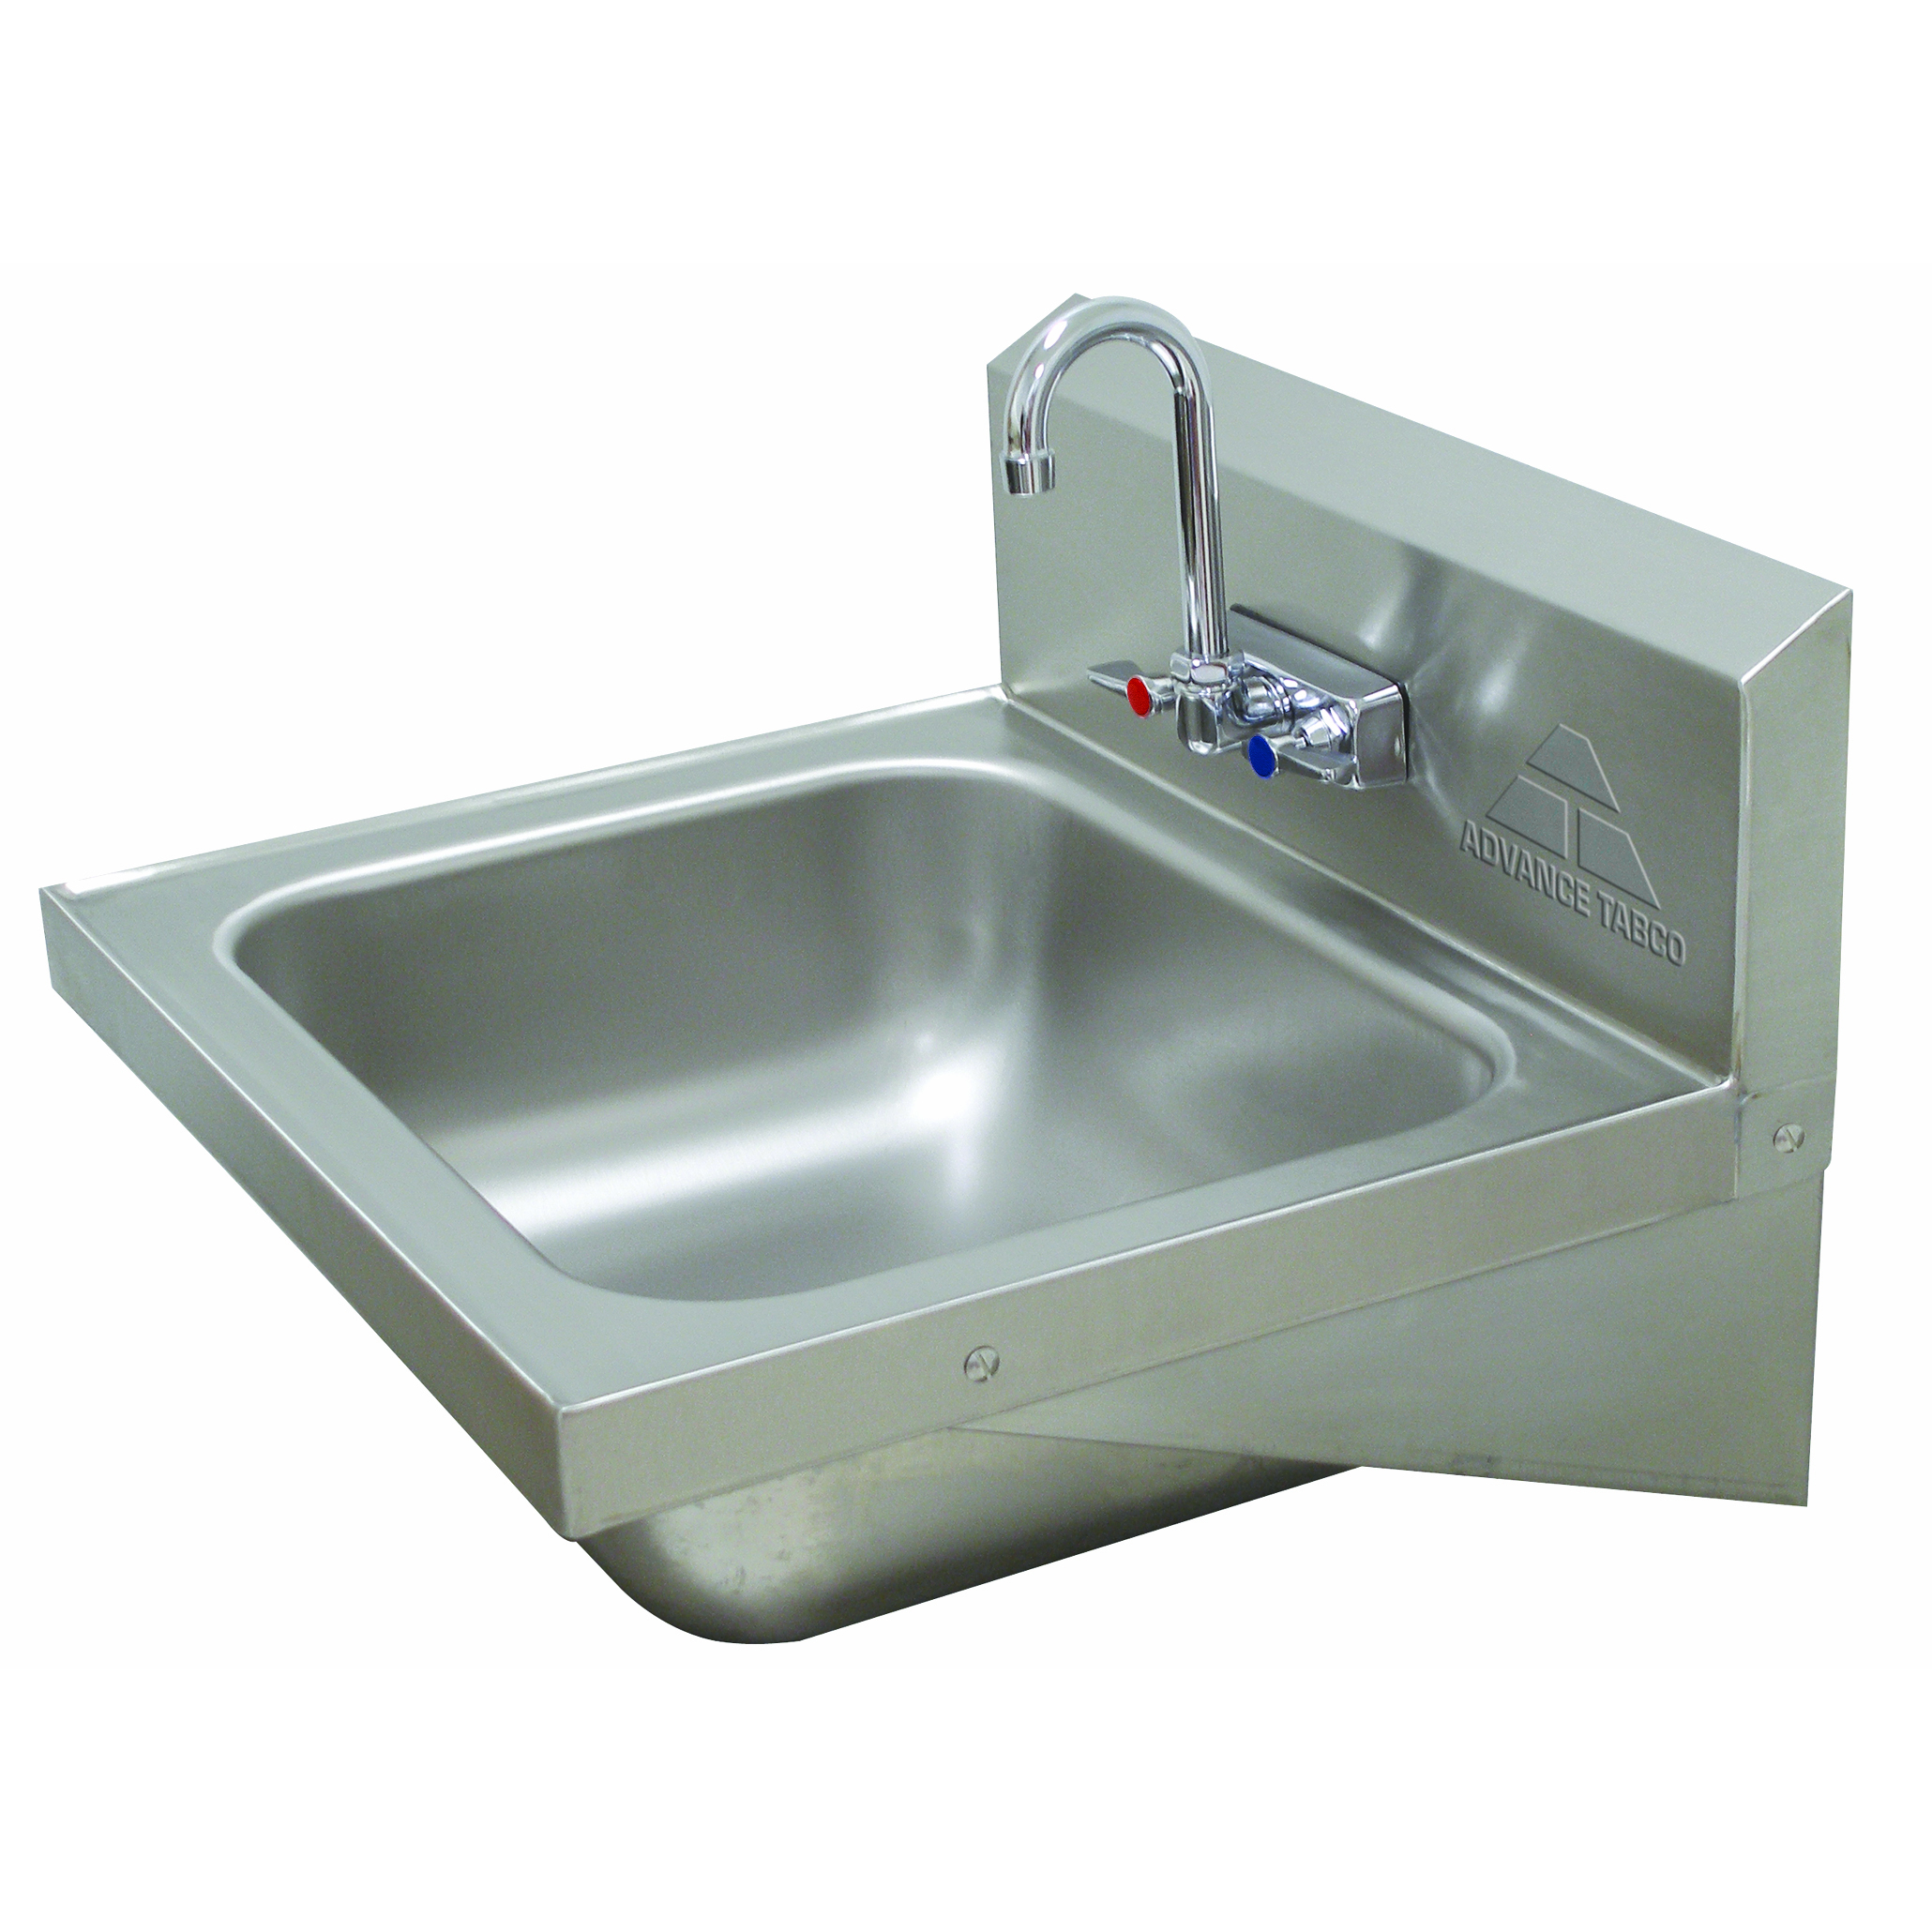 Advance Tabco 7-PS-49 sink, hand